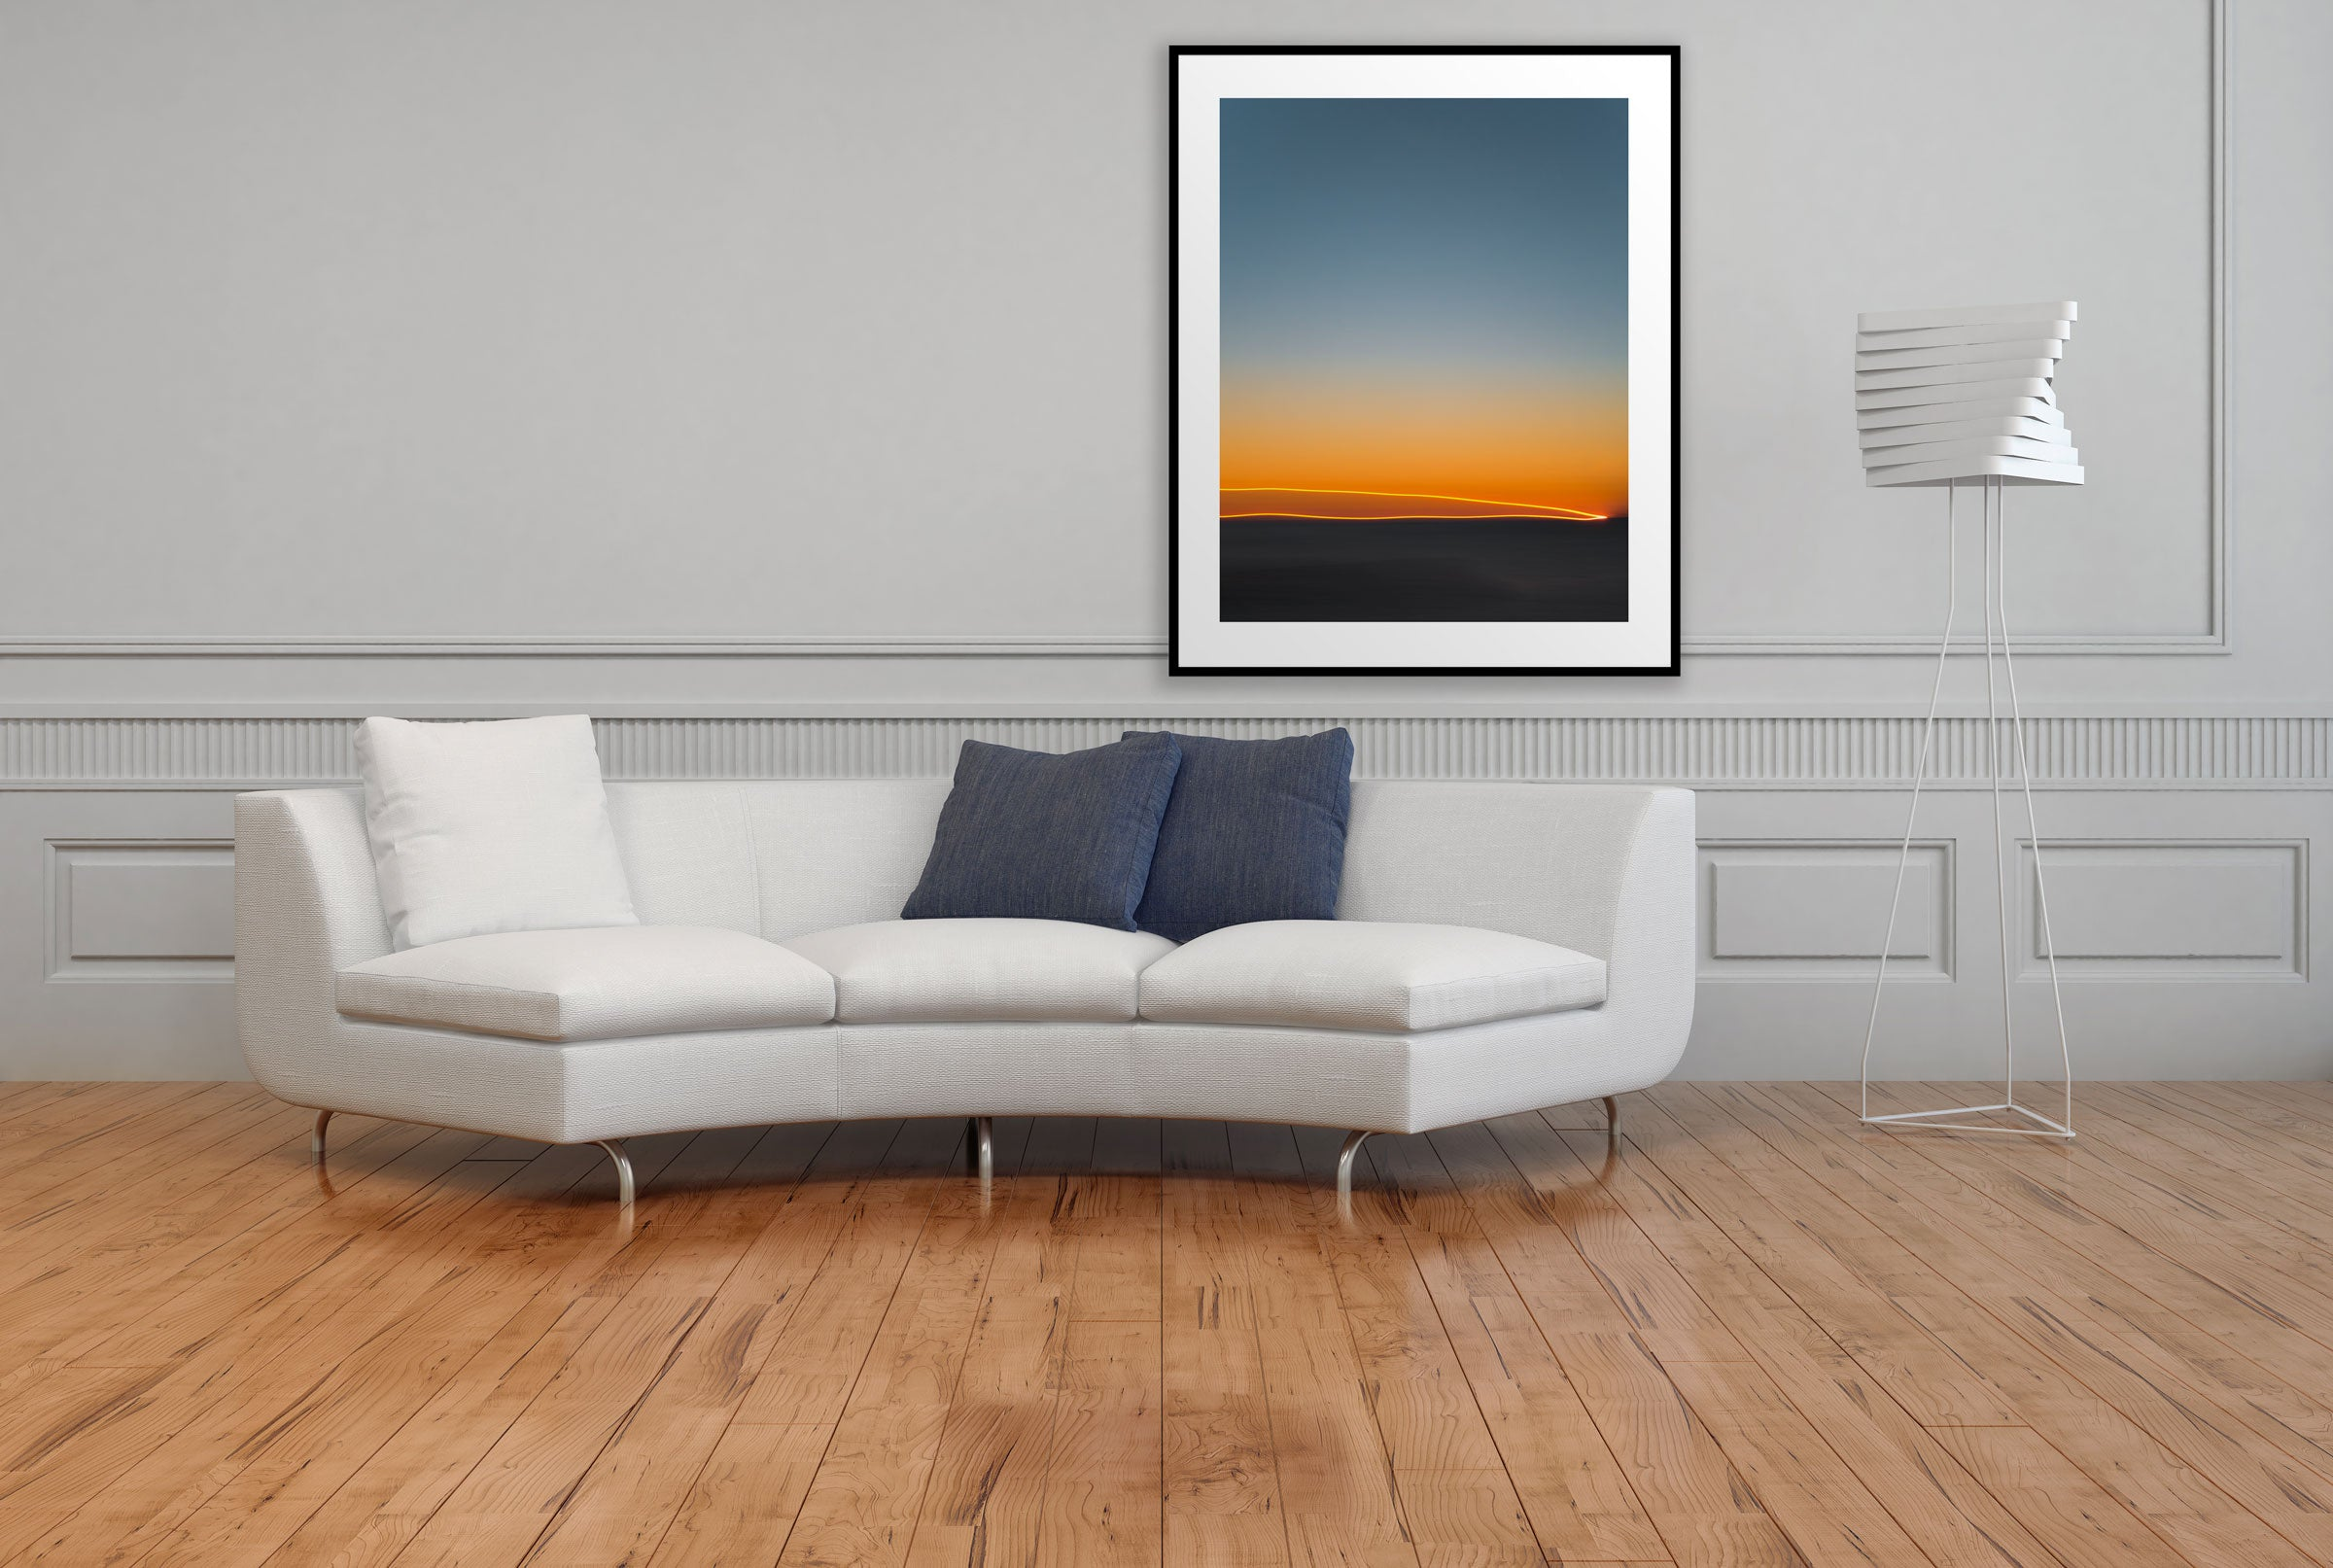 Artwork FirstLight 43 Above Sofa Black Frame